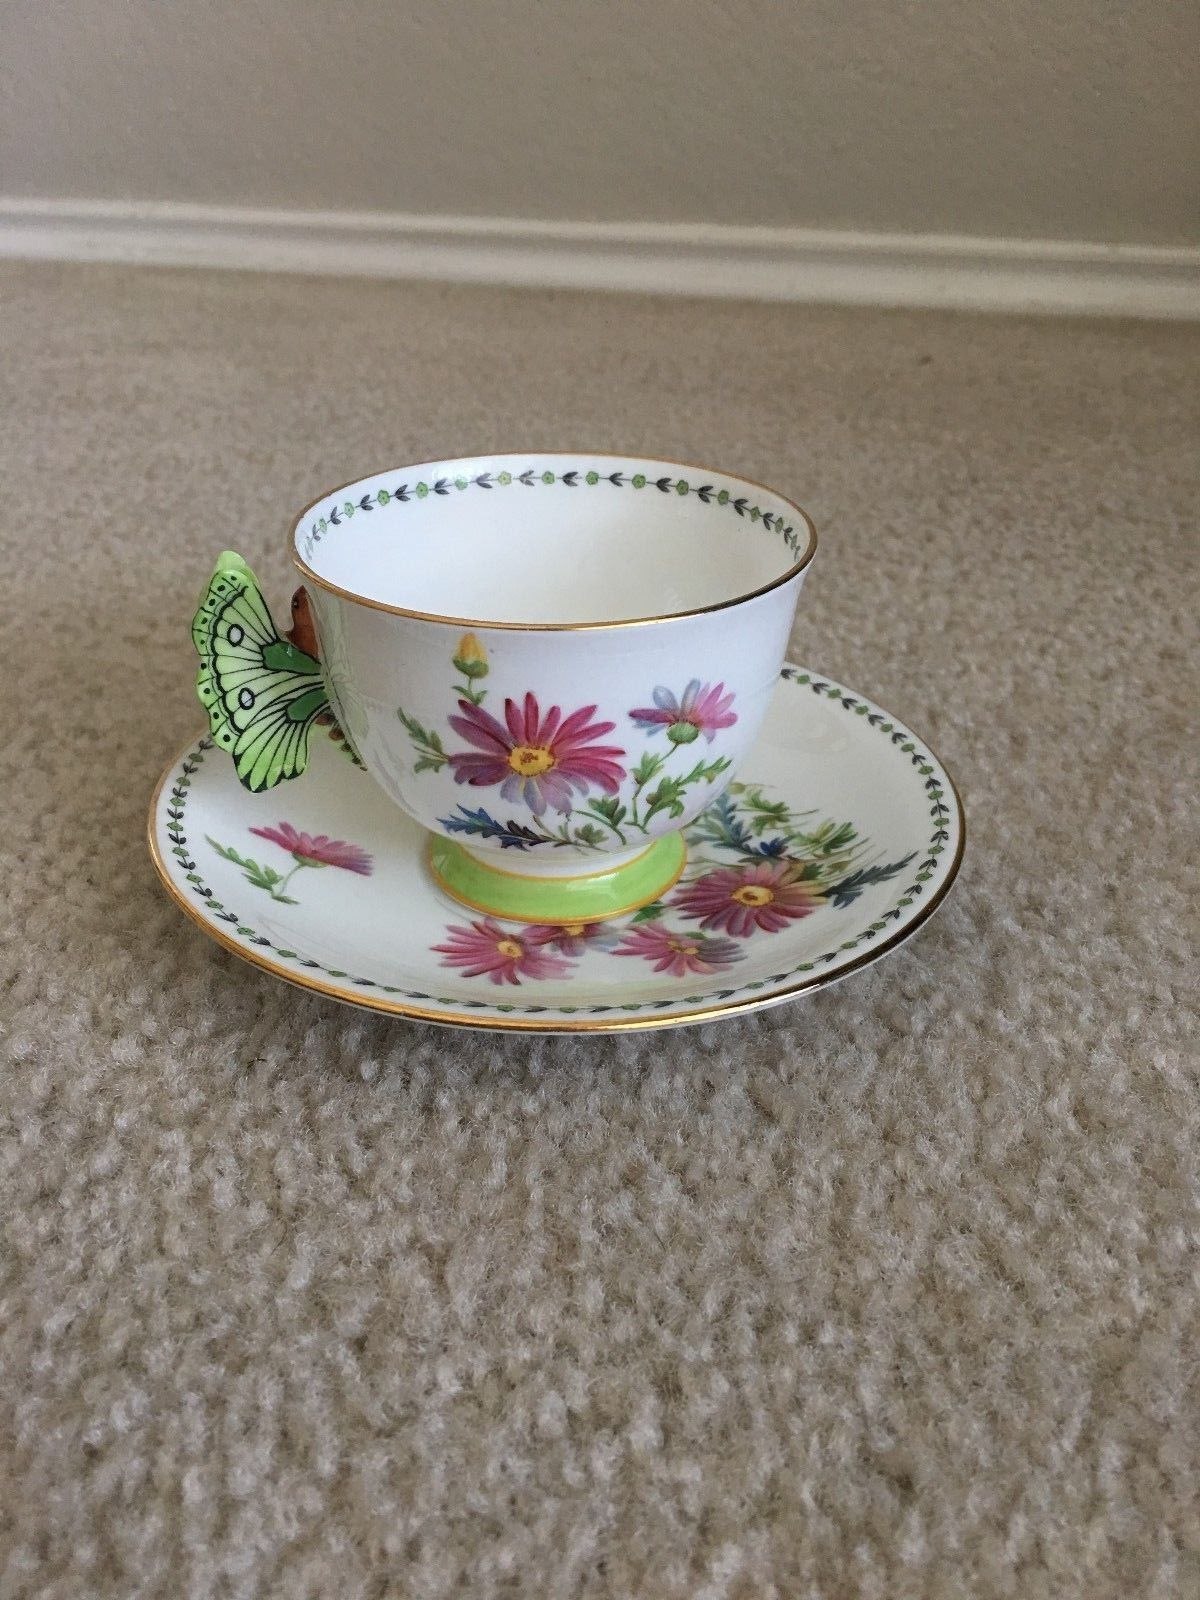 211c825cc01 RARE Aynsley Pink Flowers B1819 Butterfly Handle Tea Cup And Saucer | eBay